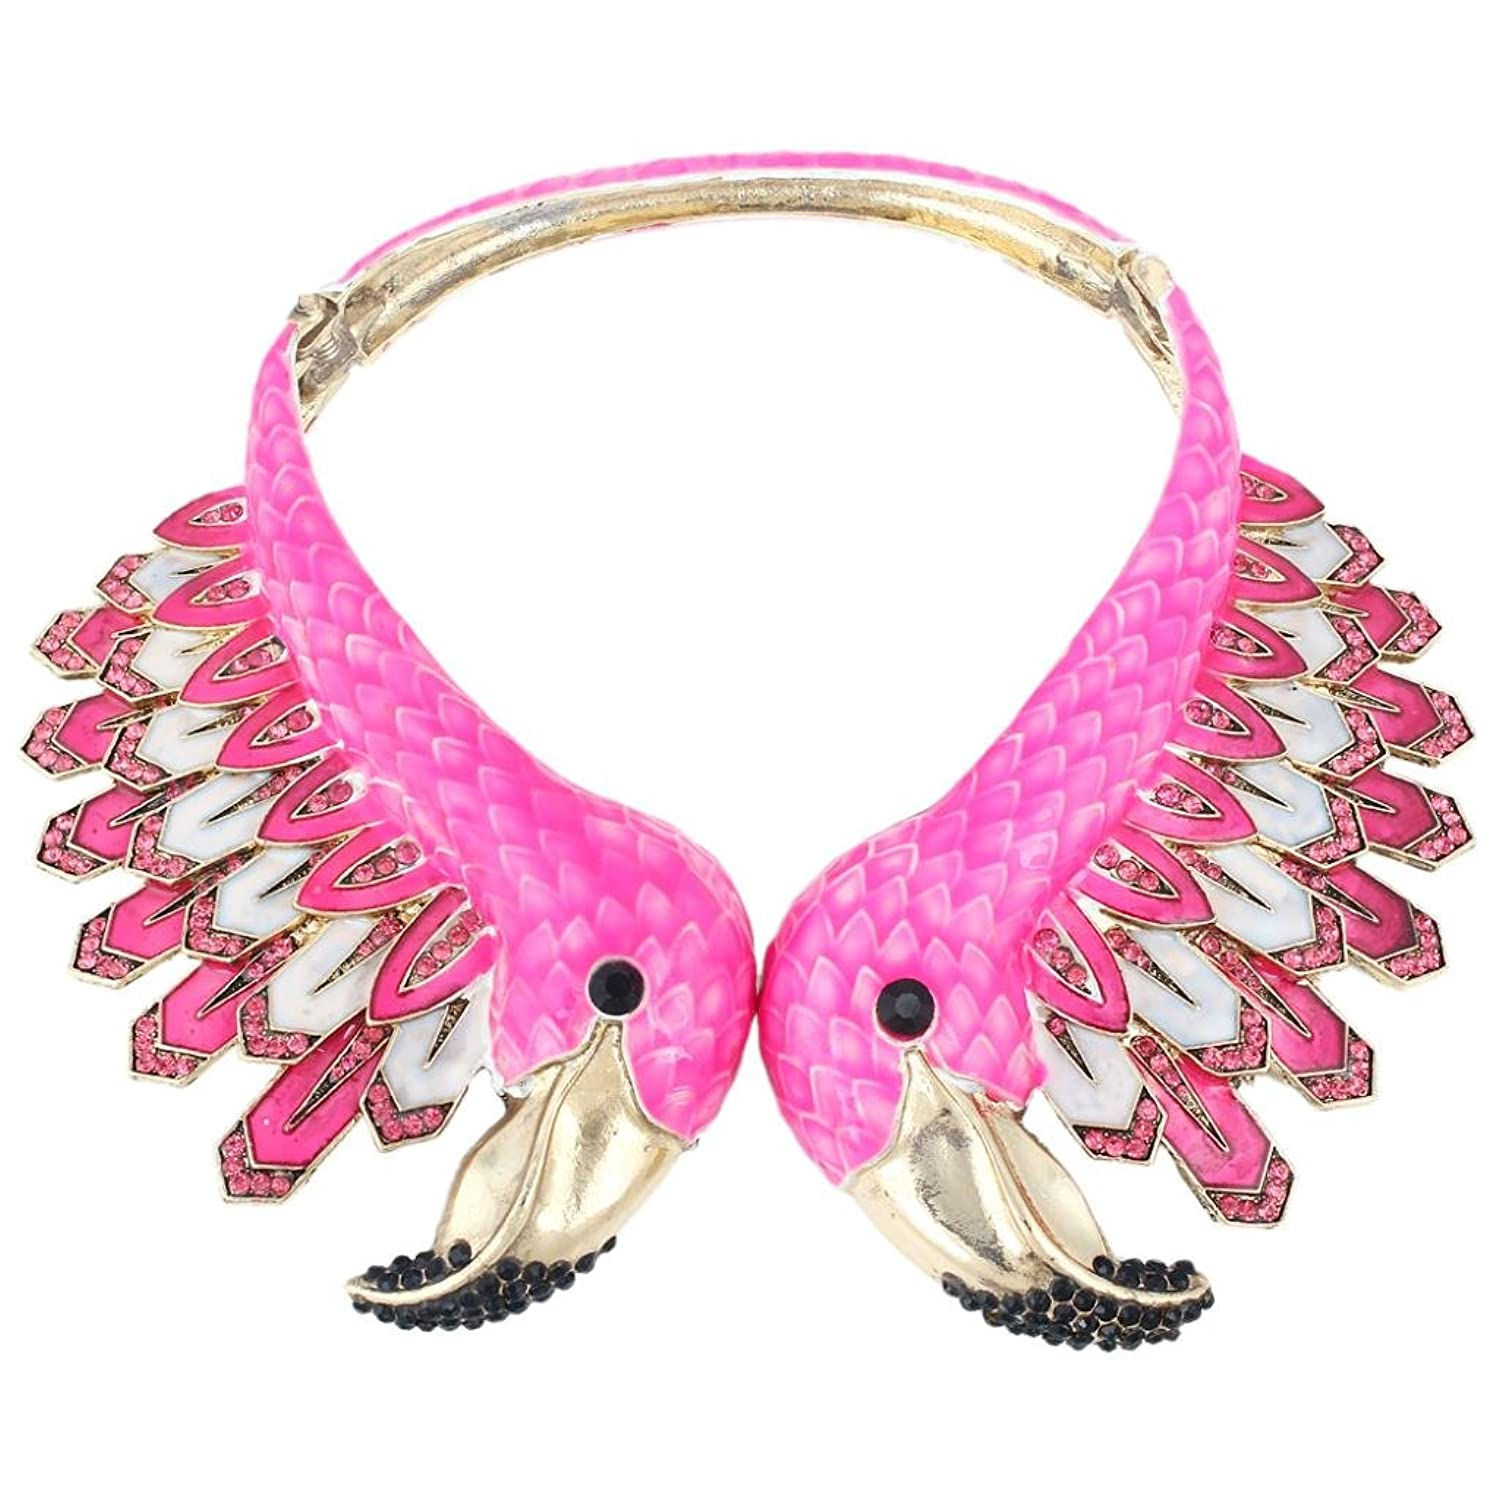 EVER FAITH® Gold-Tone Austrian Crystal Vintage Style 2 Flamingo Statement Choker Necklace Pink